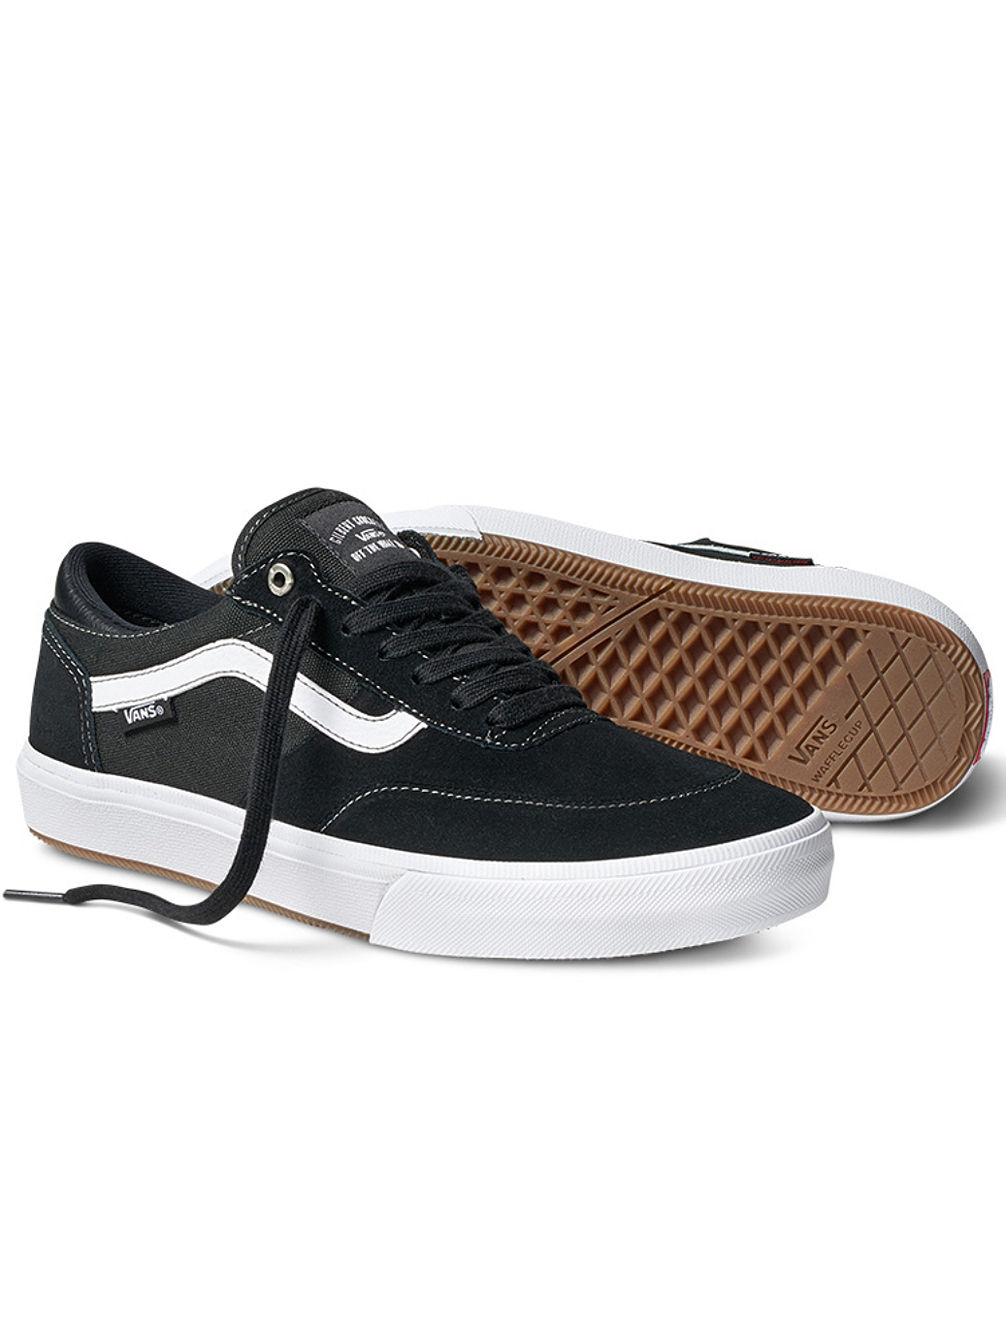 a9962f5dec Buy Vans Gilbert Crockett 2 Pro Skate Shoes online at Blue Tomato